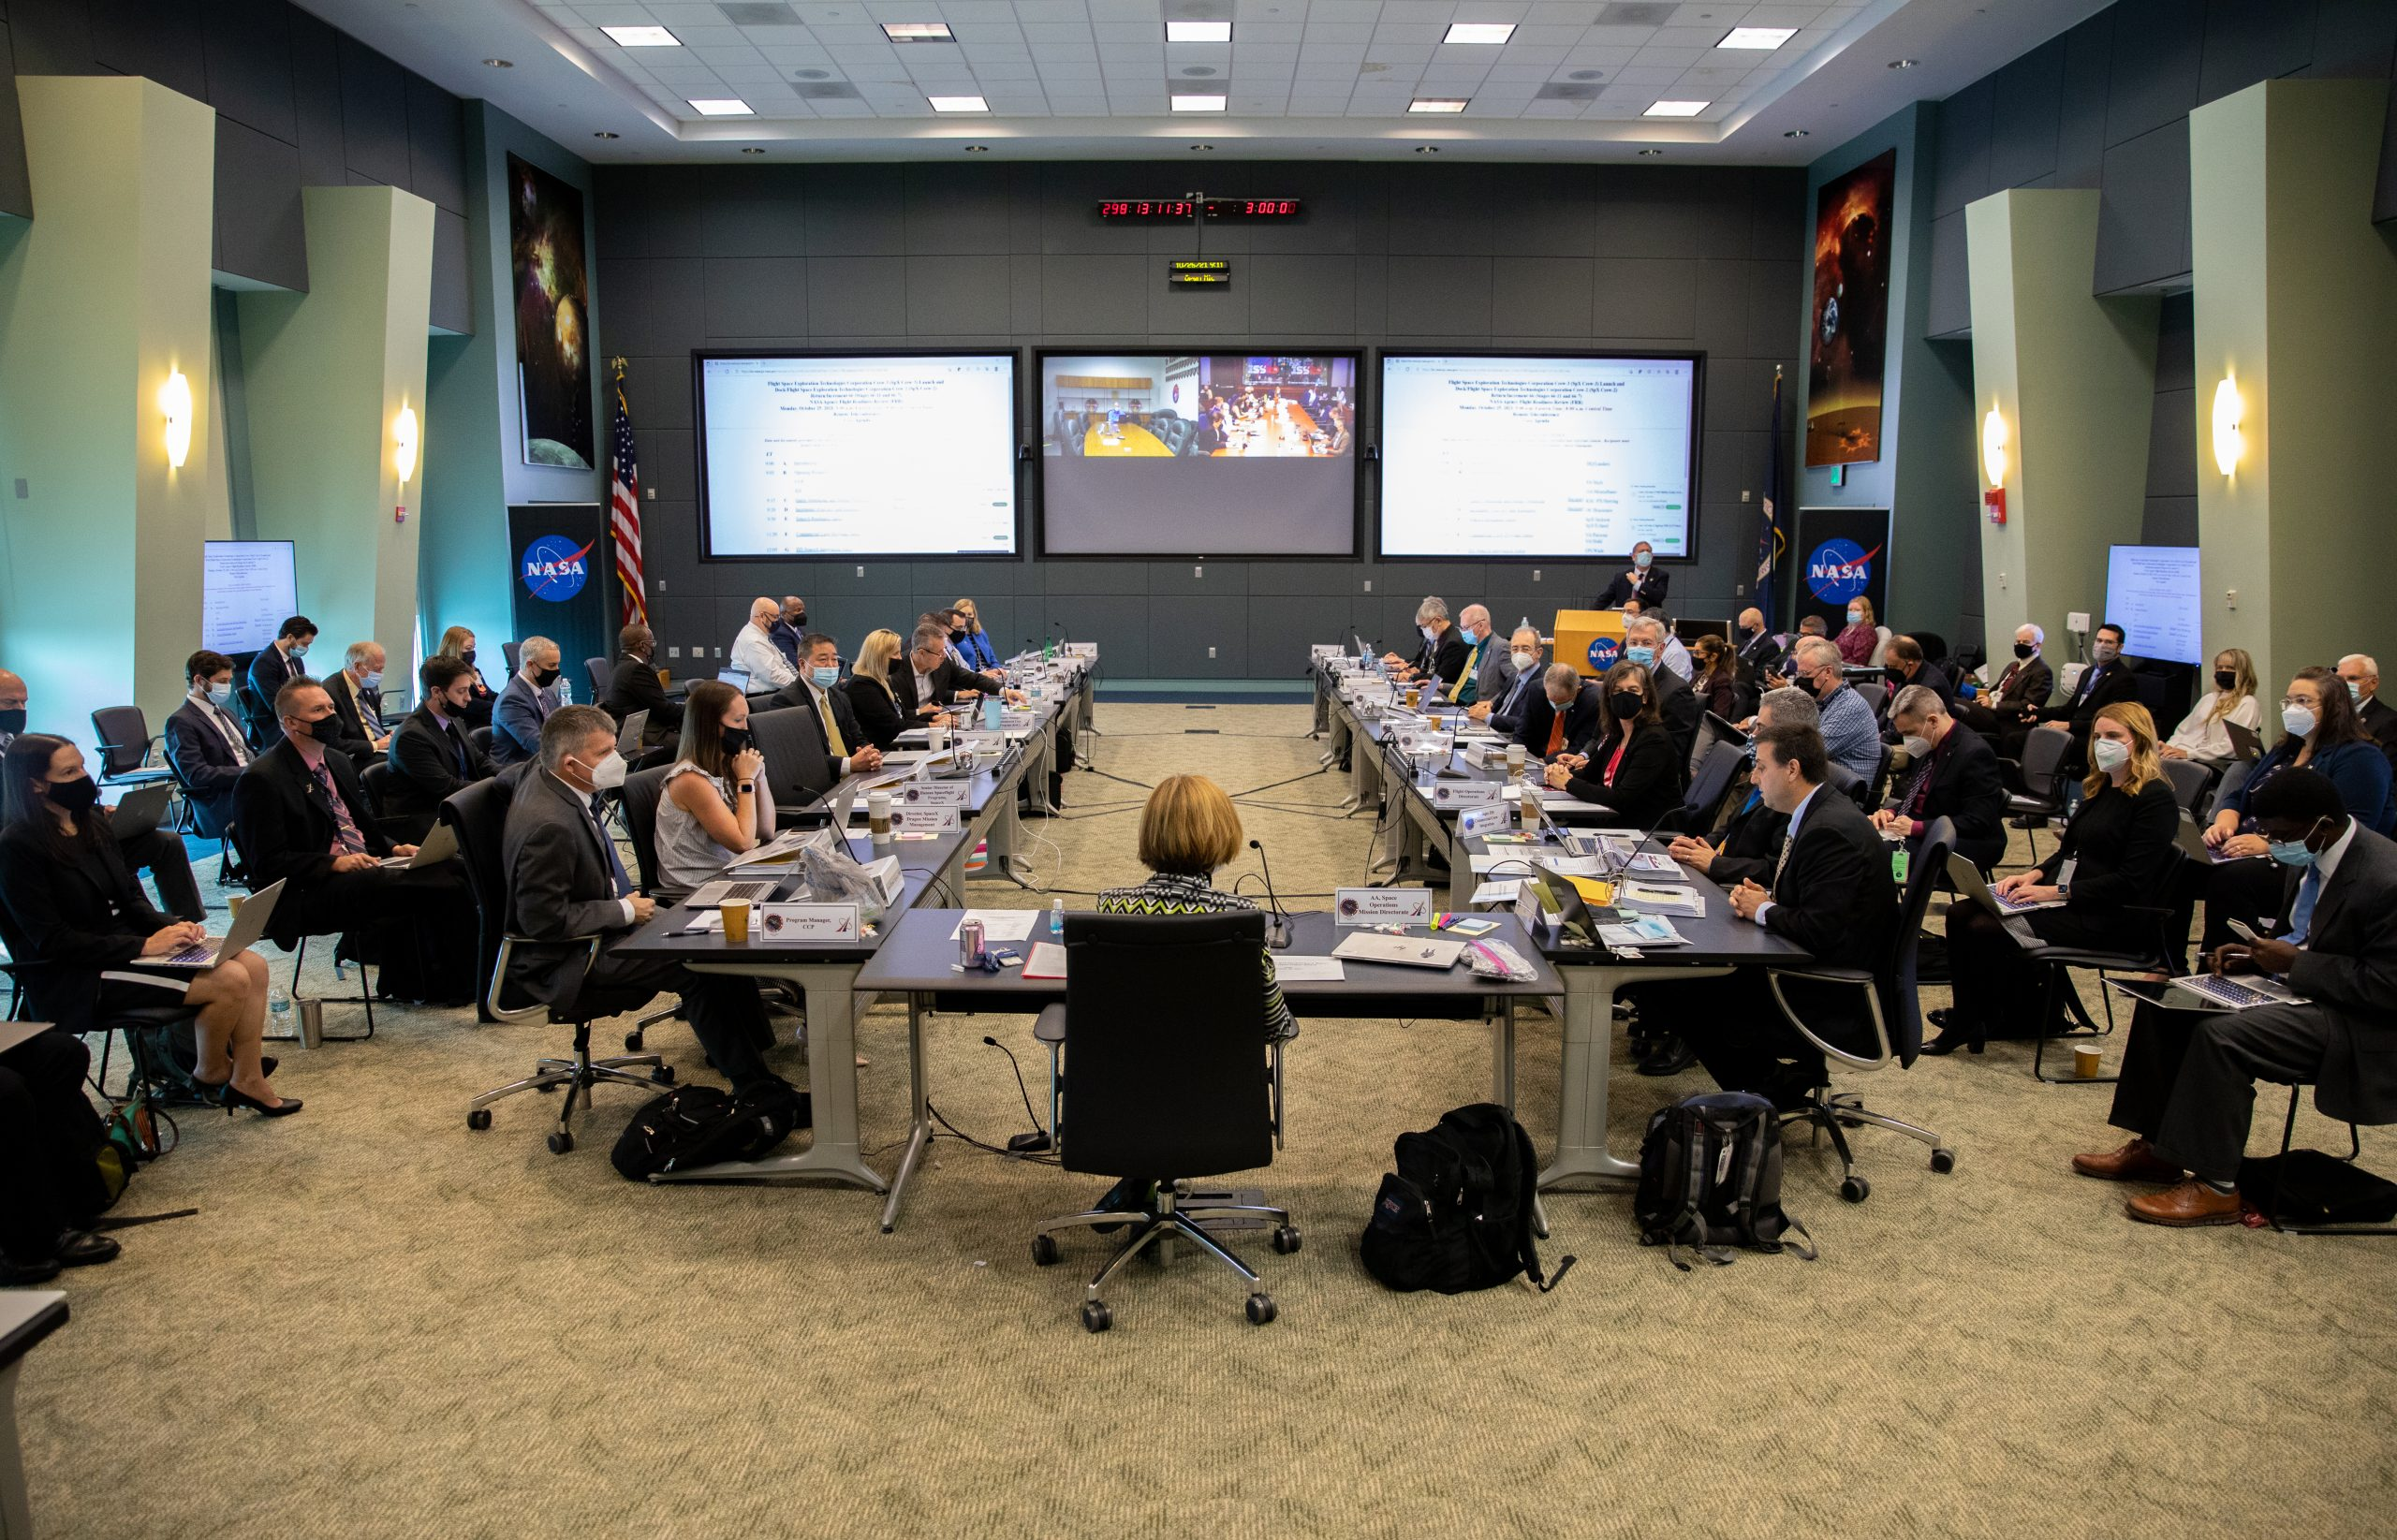 NASA and SpaceX managers participate in a Flight Readiness Review for the agency's SpaceX Crew-3 mission at Kennedy Space Center in Florida on Oct. 25, 2021.